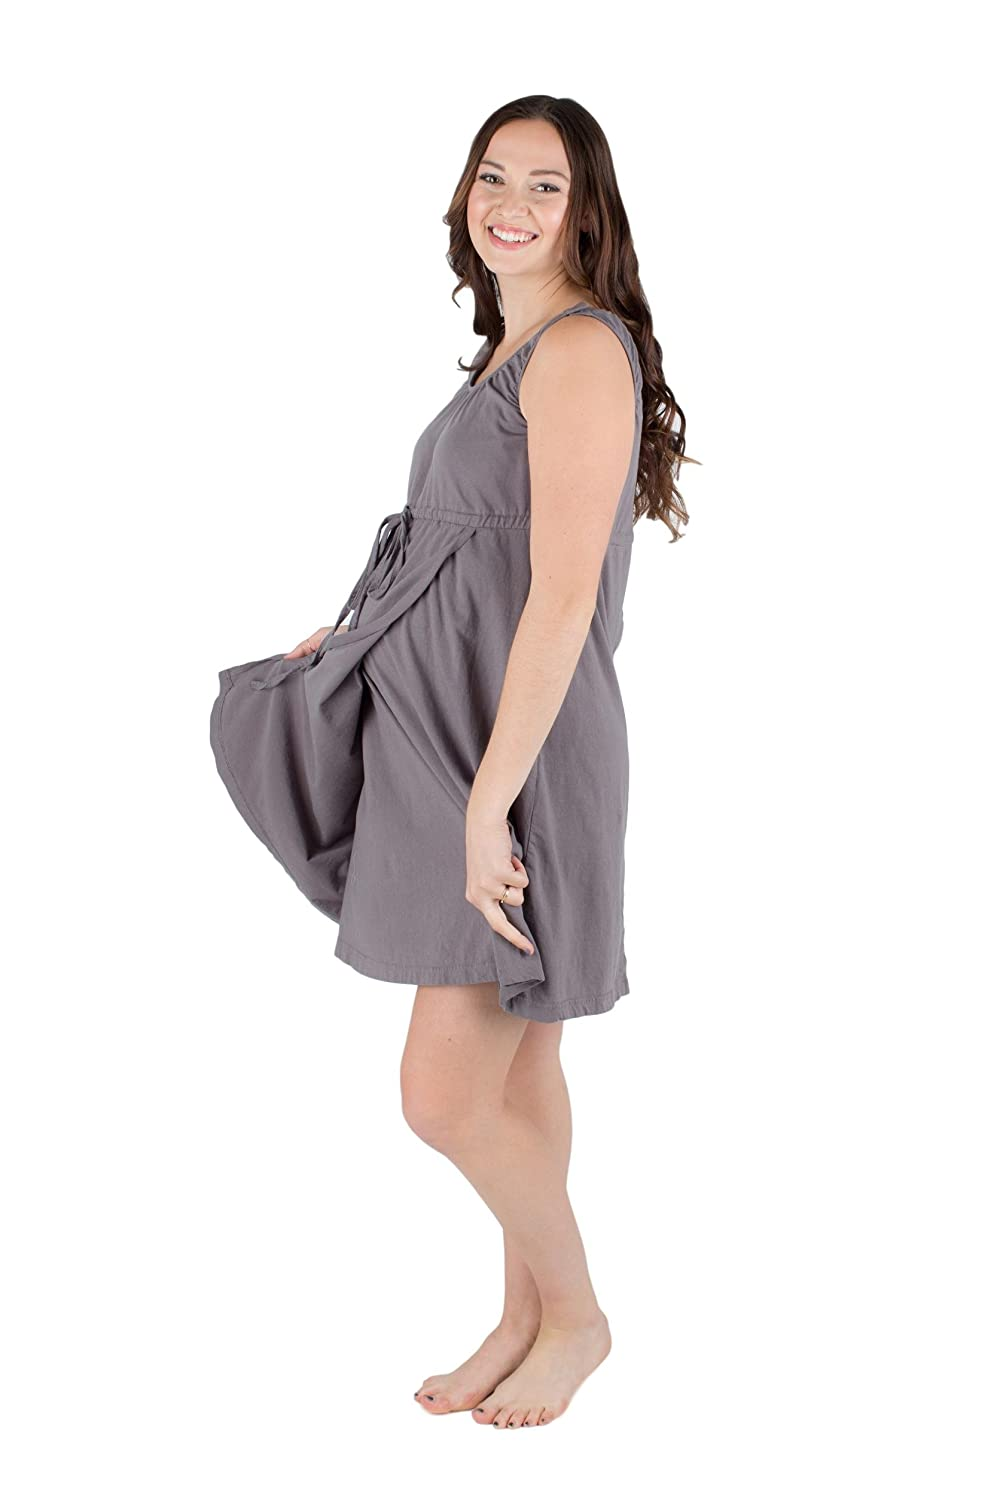 ab21c20b9b677 Hospital Bag Must Have Baby Be Mine 3 in 1 Labor/Delivery/Nursing Hospital Gown  Maternity Women